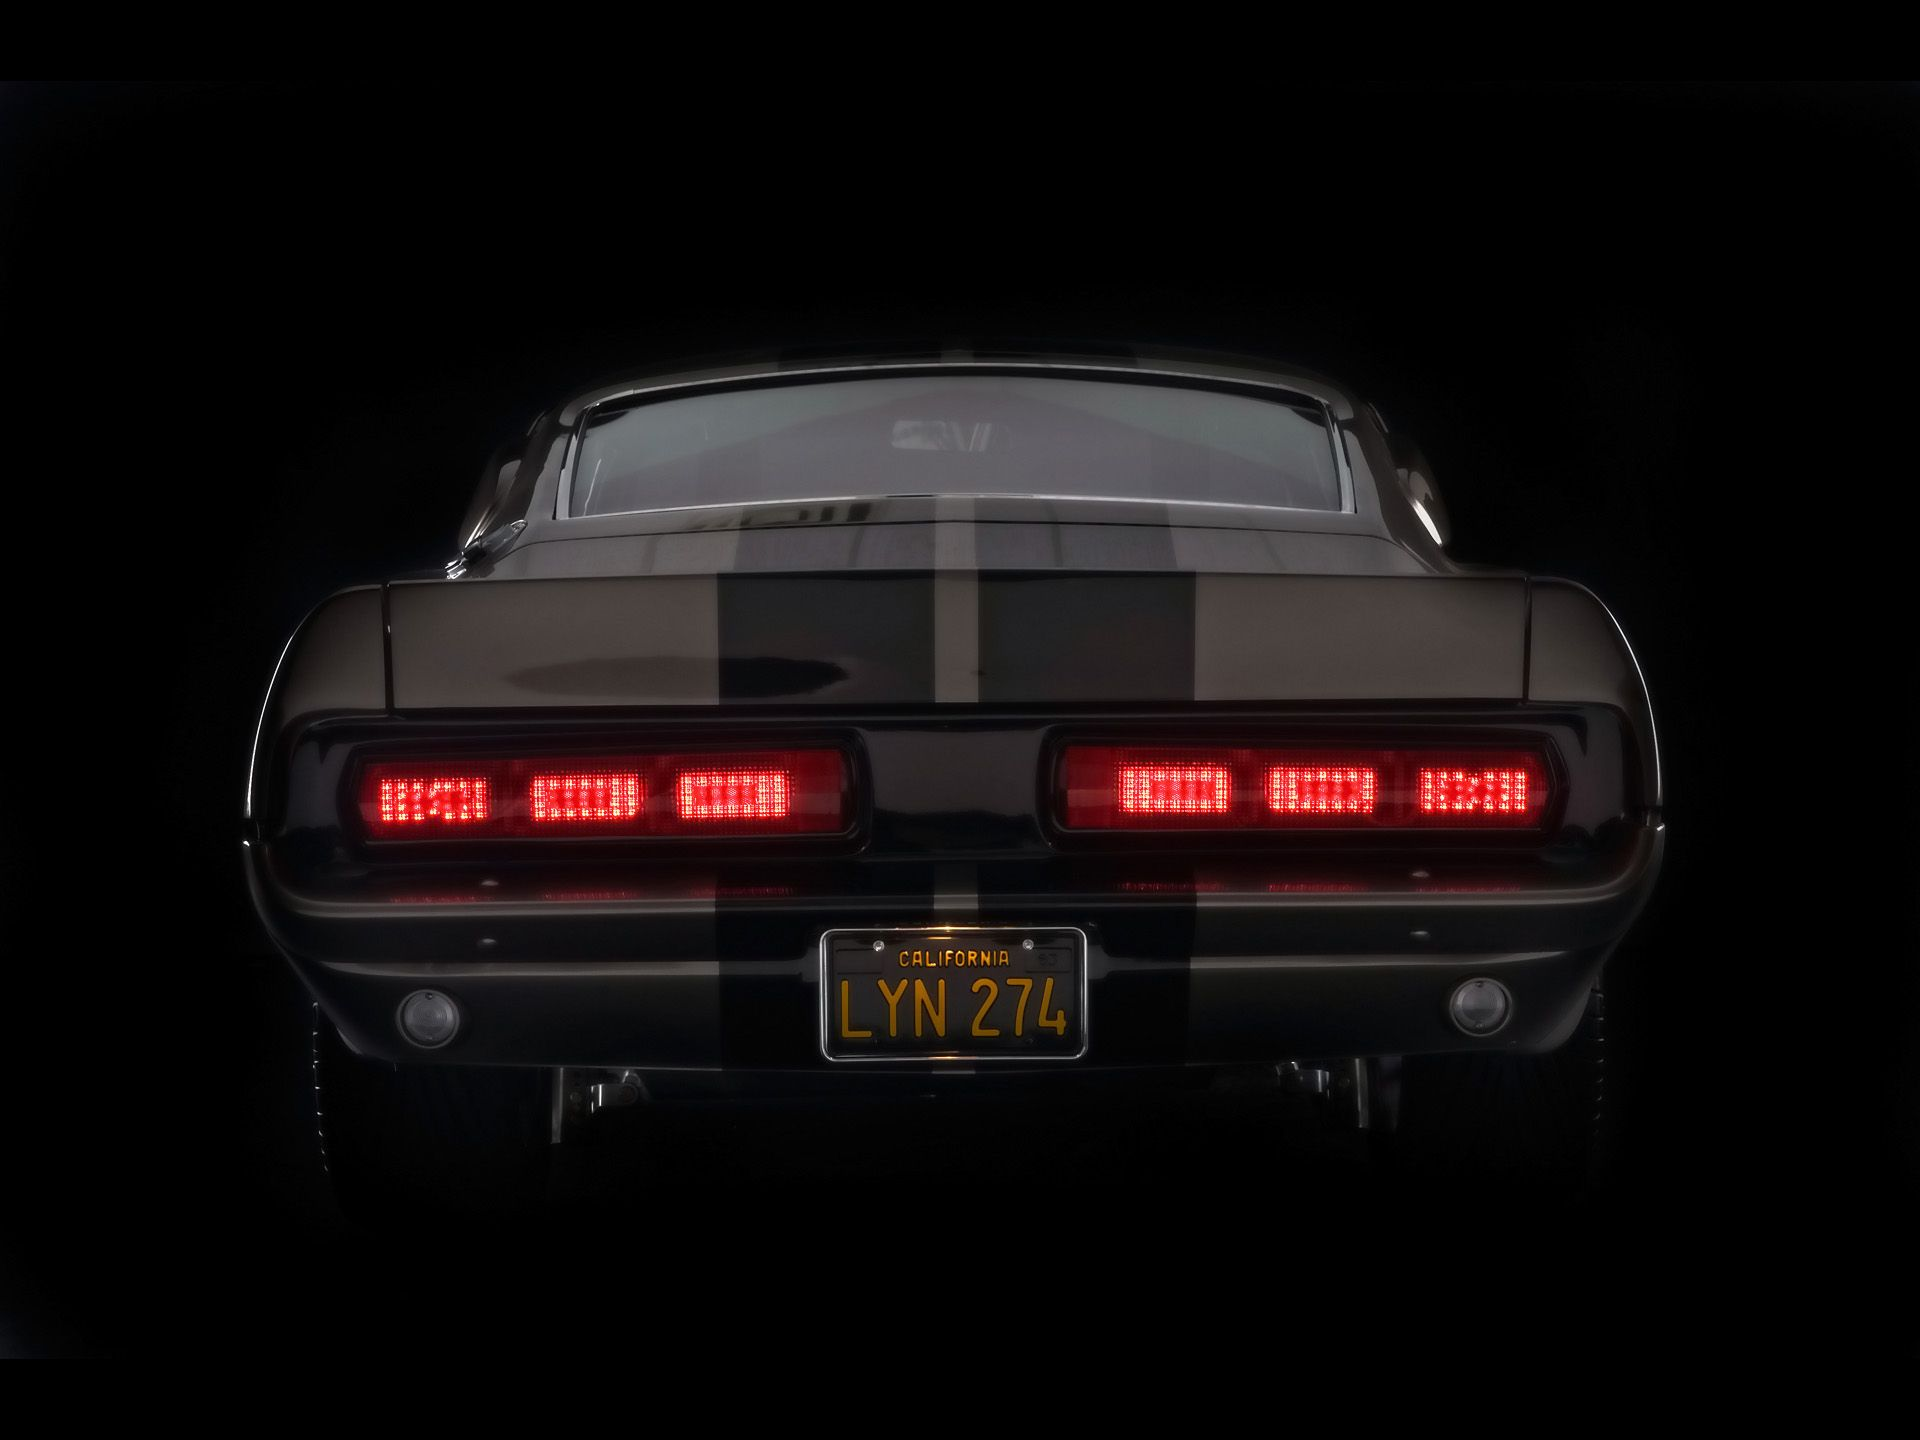 1967 Mustang Fastback Gone In 60 Seconds Eleanor Rear Lights Mustang Fastback Ford Mustang Shelby Cobra Ford Mustang